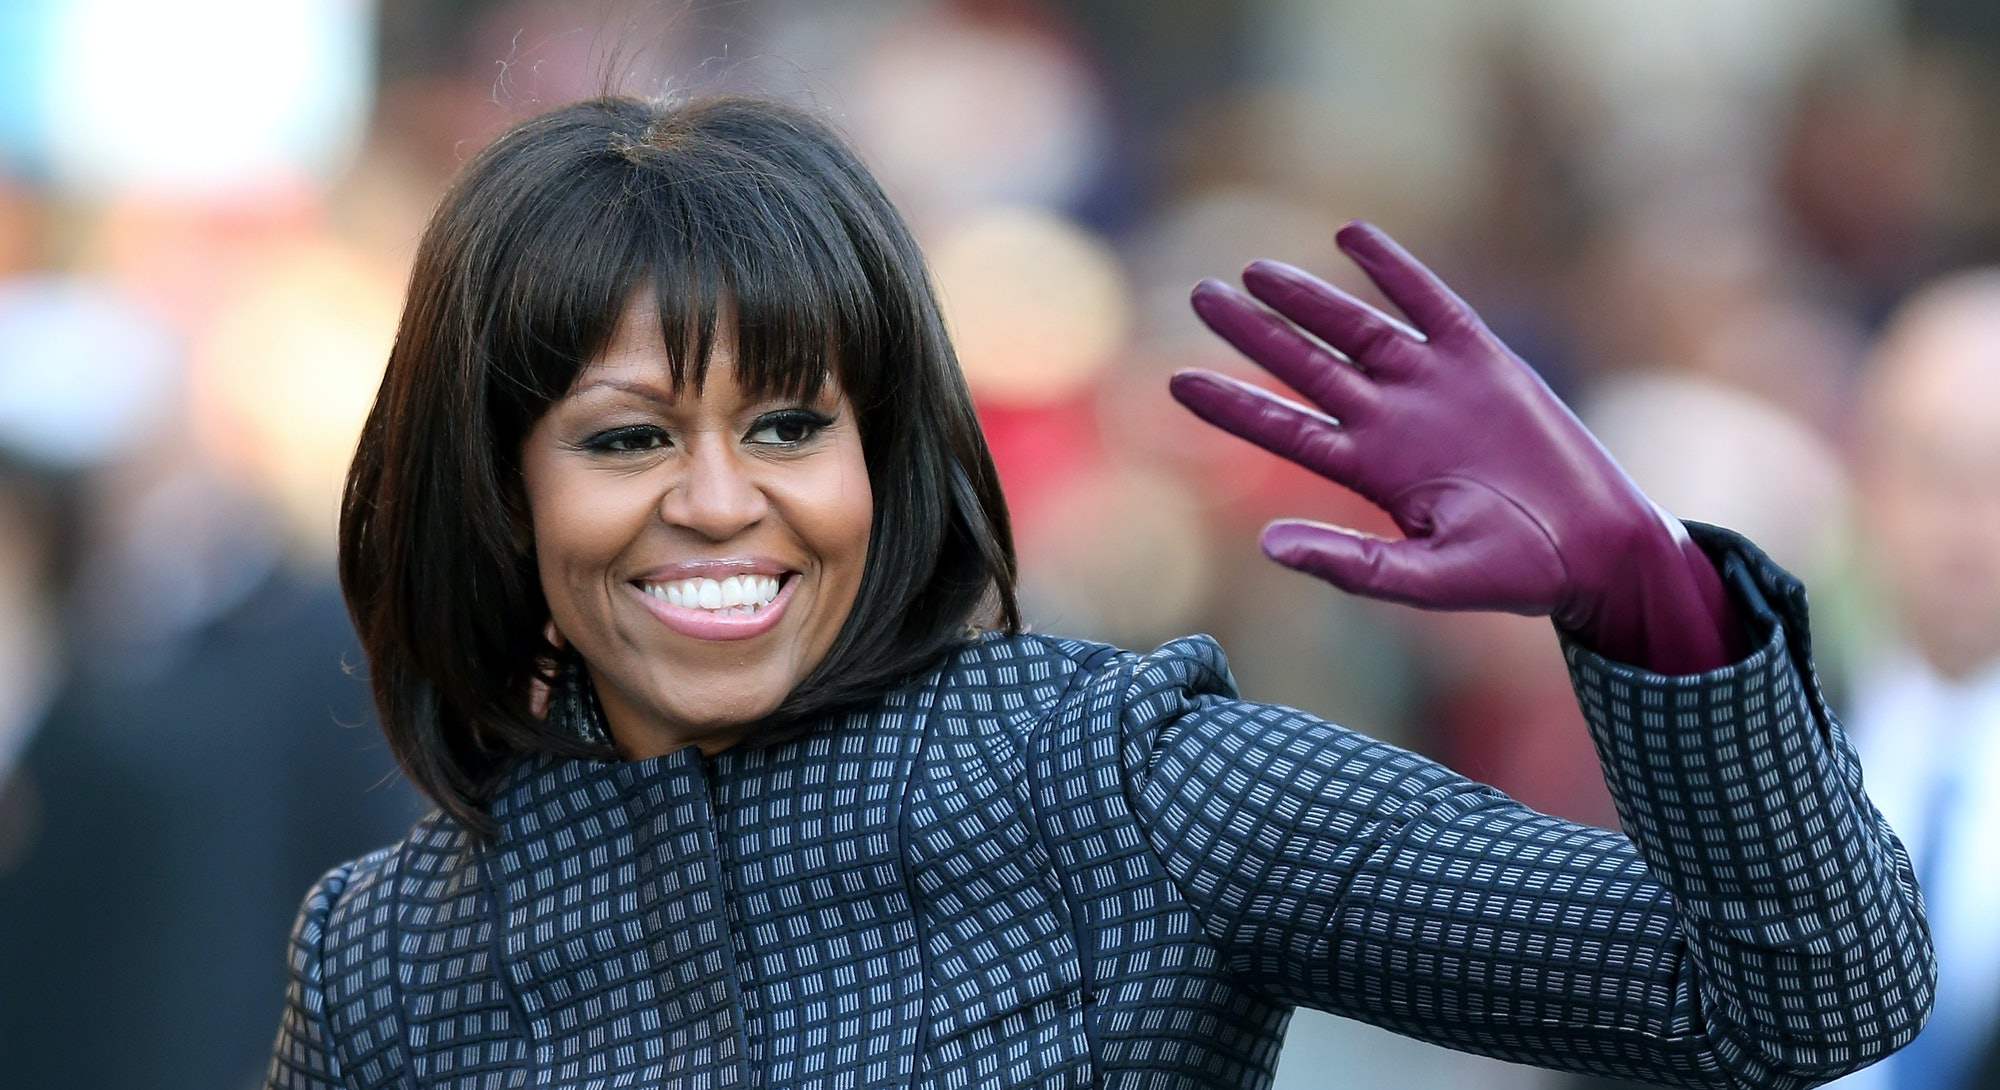 Michelle Obama has spoken candidly about motherhood over the years.